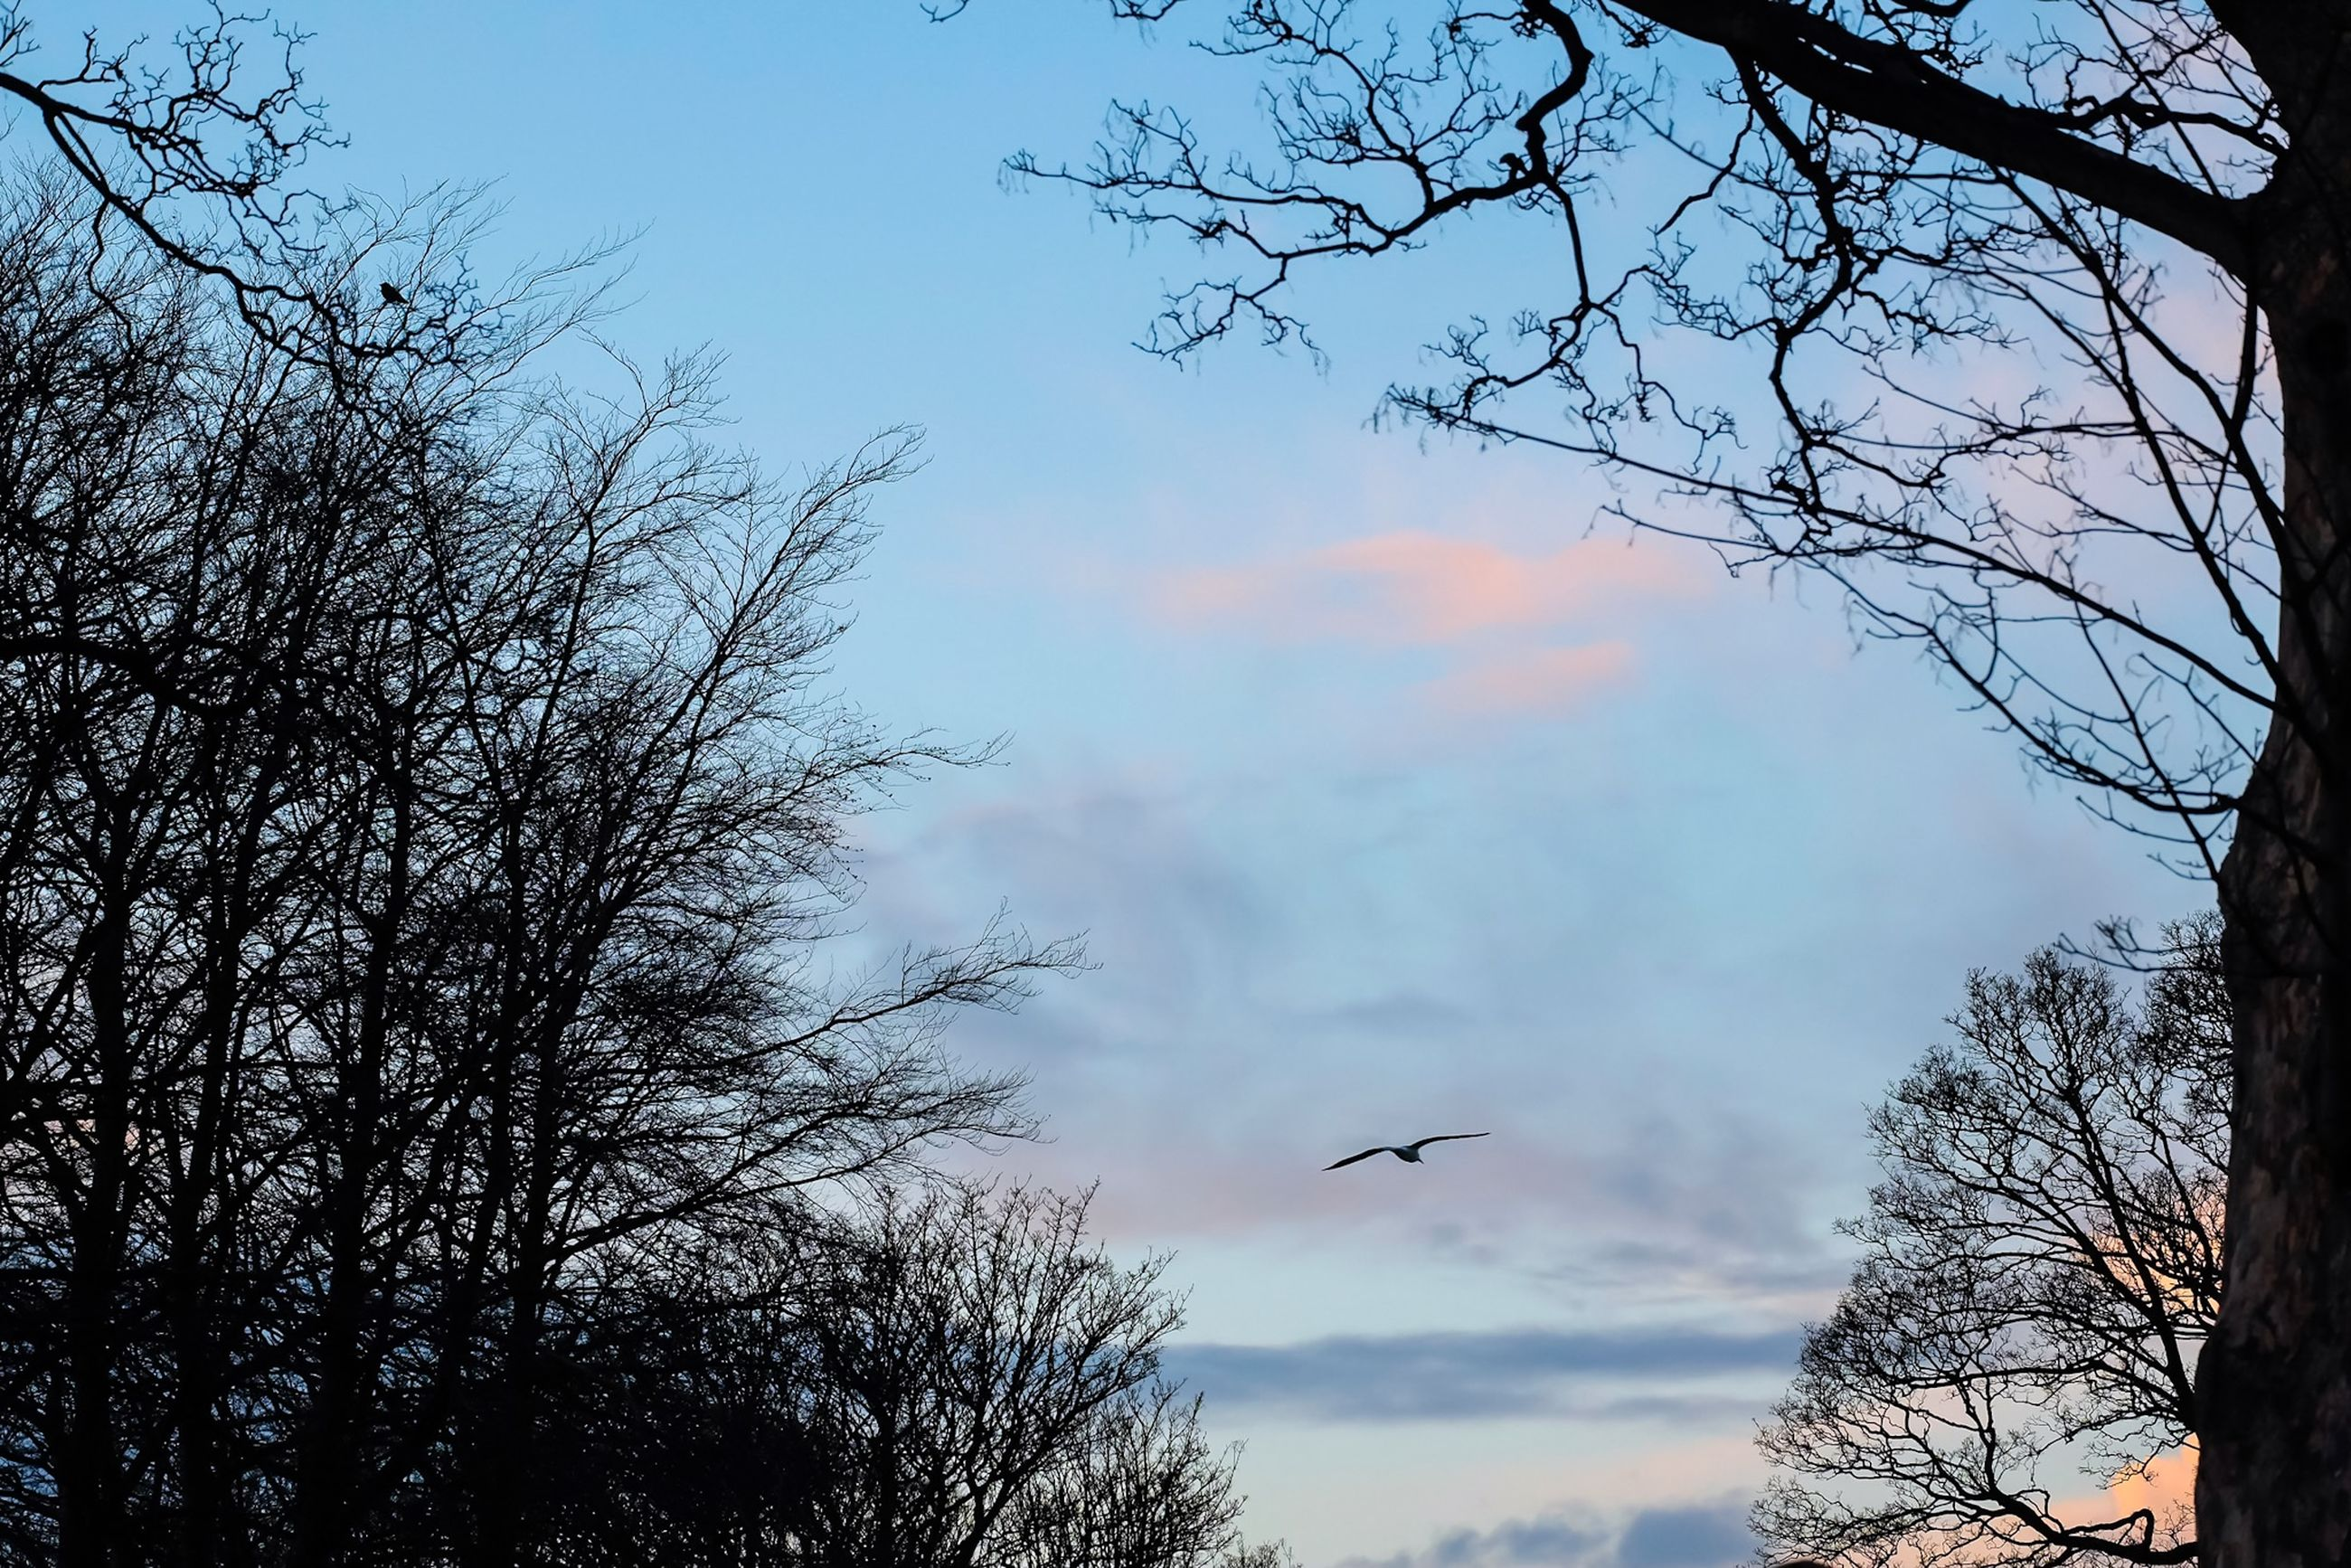 bird, low angle view, animal themes, animals in the wild, tree, wildlife, sky, flying, branch, silhouette, bare tree, one animal, nature, beauty in nature, perching, cloud - sky, spread wings, tranquility, outdoors, scenics